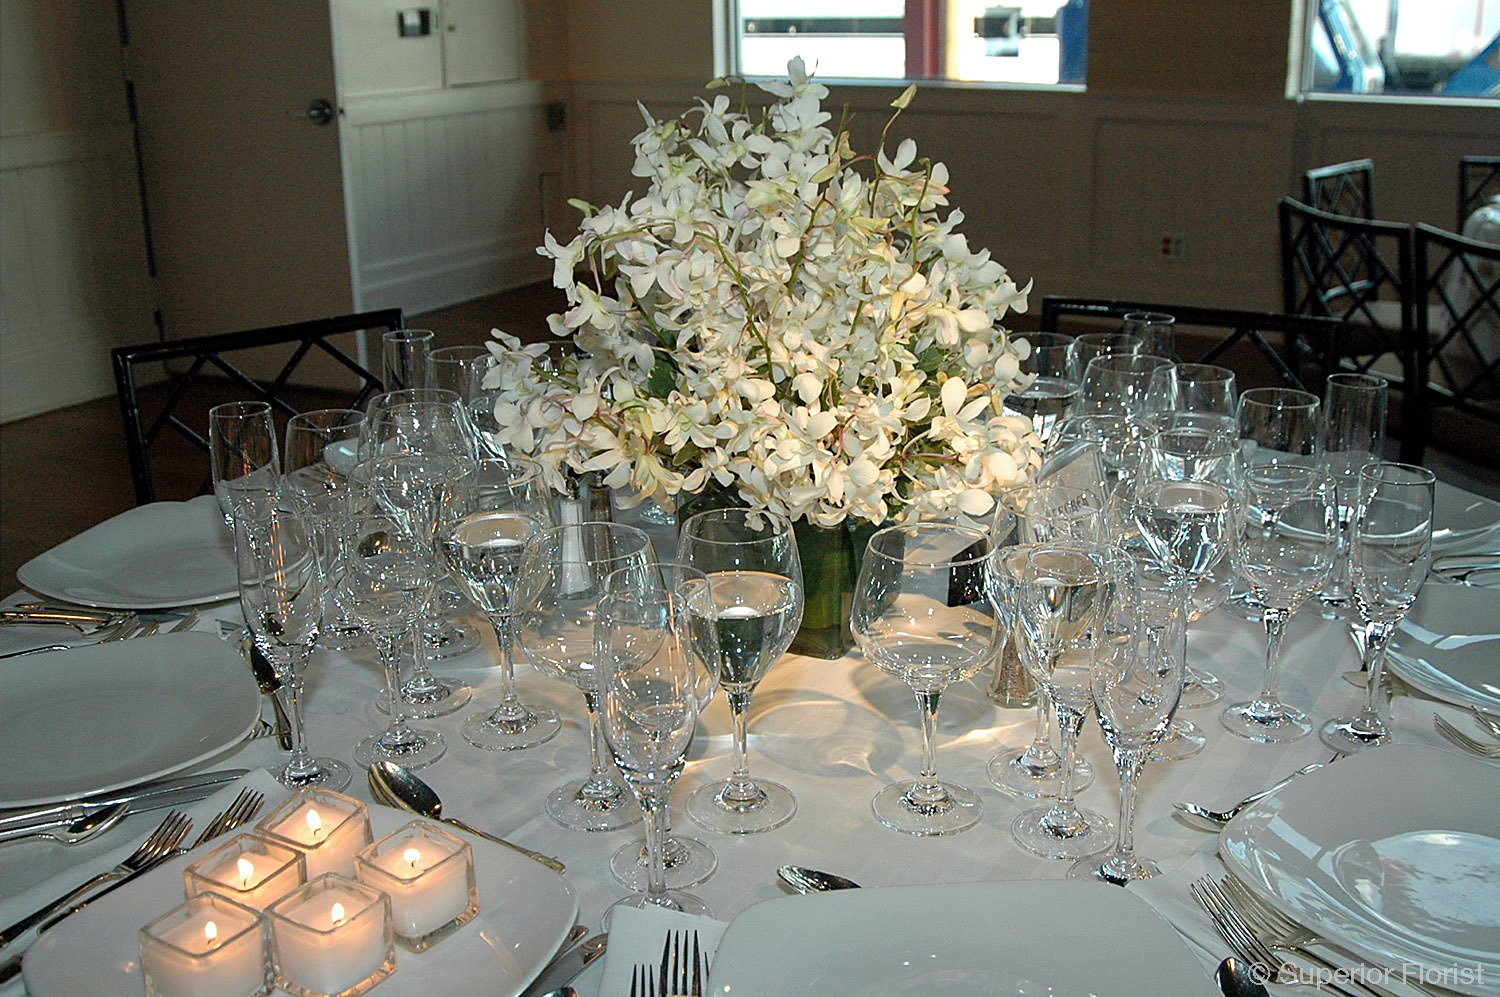 Superior Florist – Centerpieces:  Dinner table centerpiece of white Dendrobium orchids in a glass cube vase. Inside of vase lined with leaf wrap.